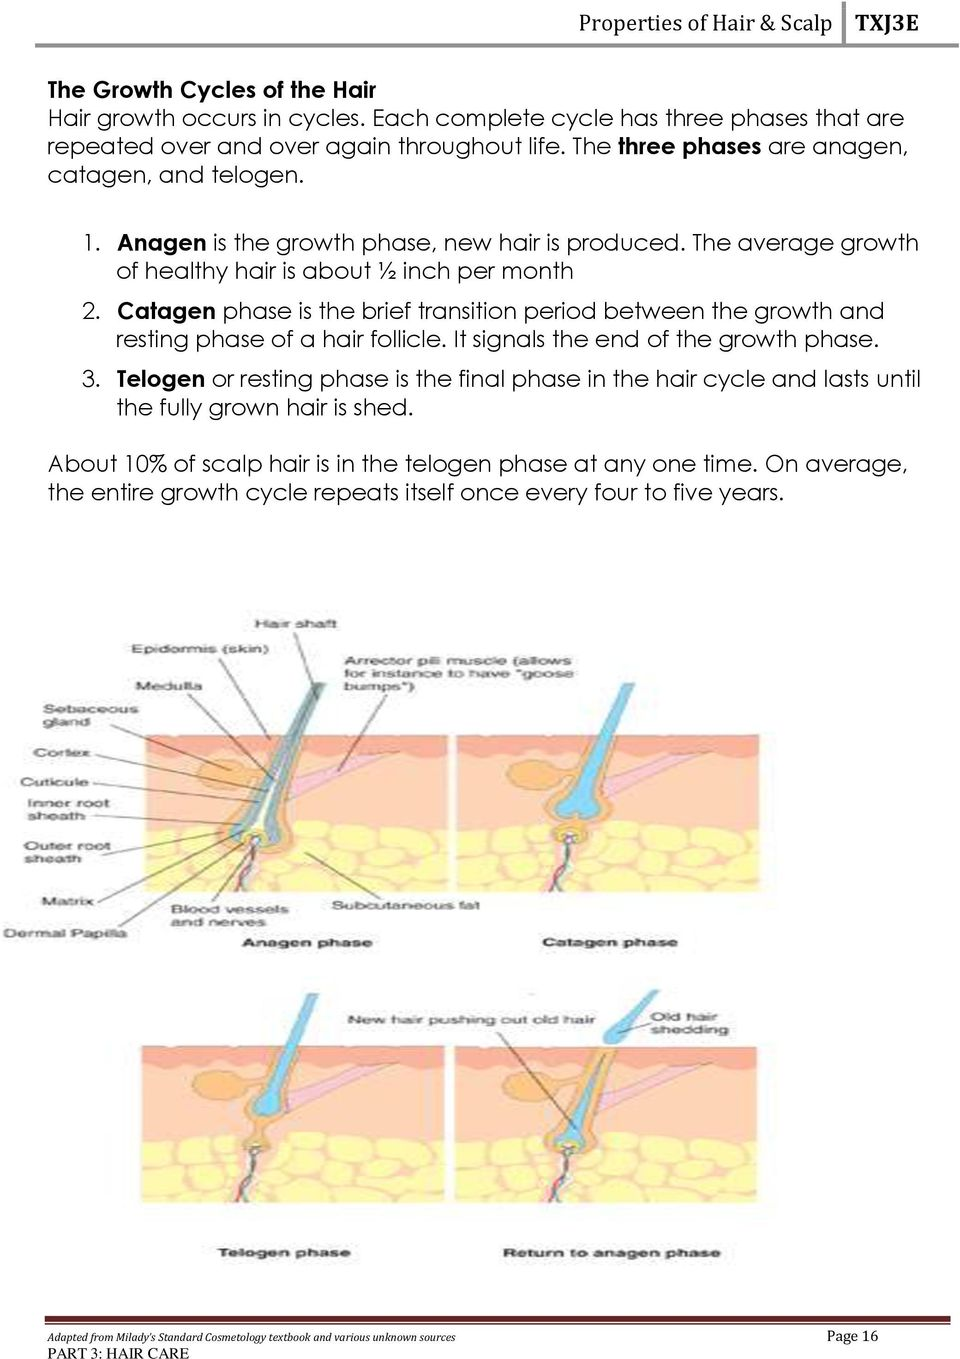 Properties of the hair scalp workbook pdf adapted from milady s standard cosmetology textbook and various unknown sources page 16 catagen phase is the brief transition period between the growth and fandeluxe Images